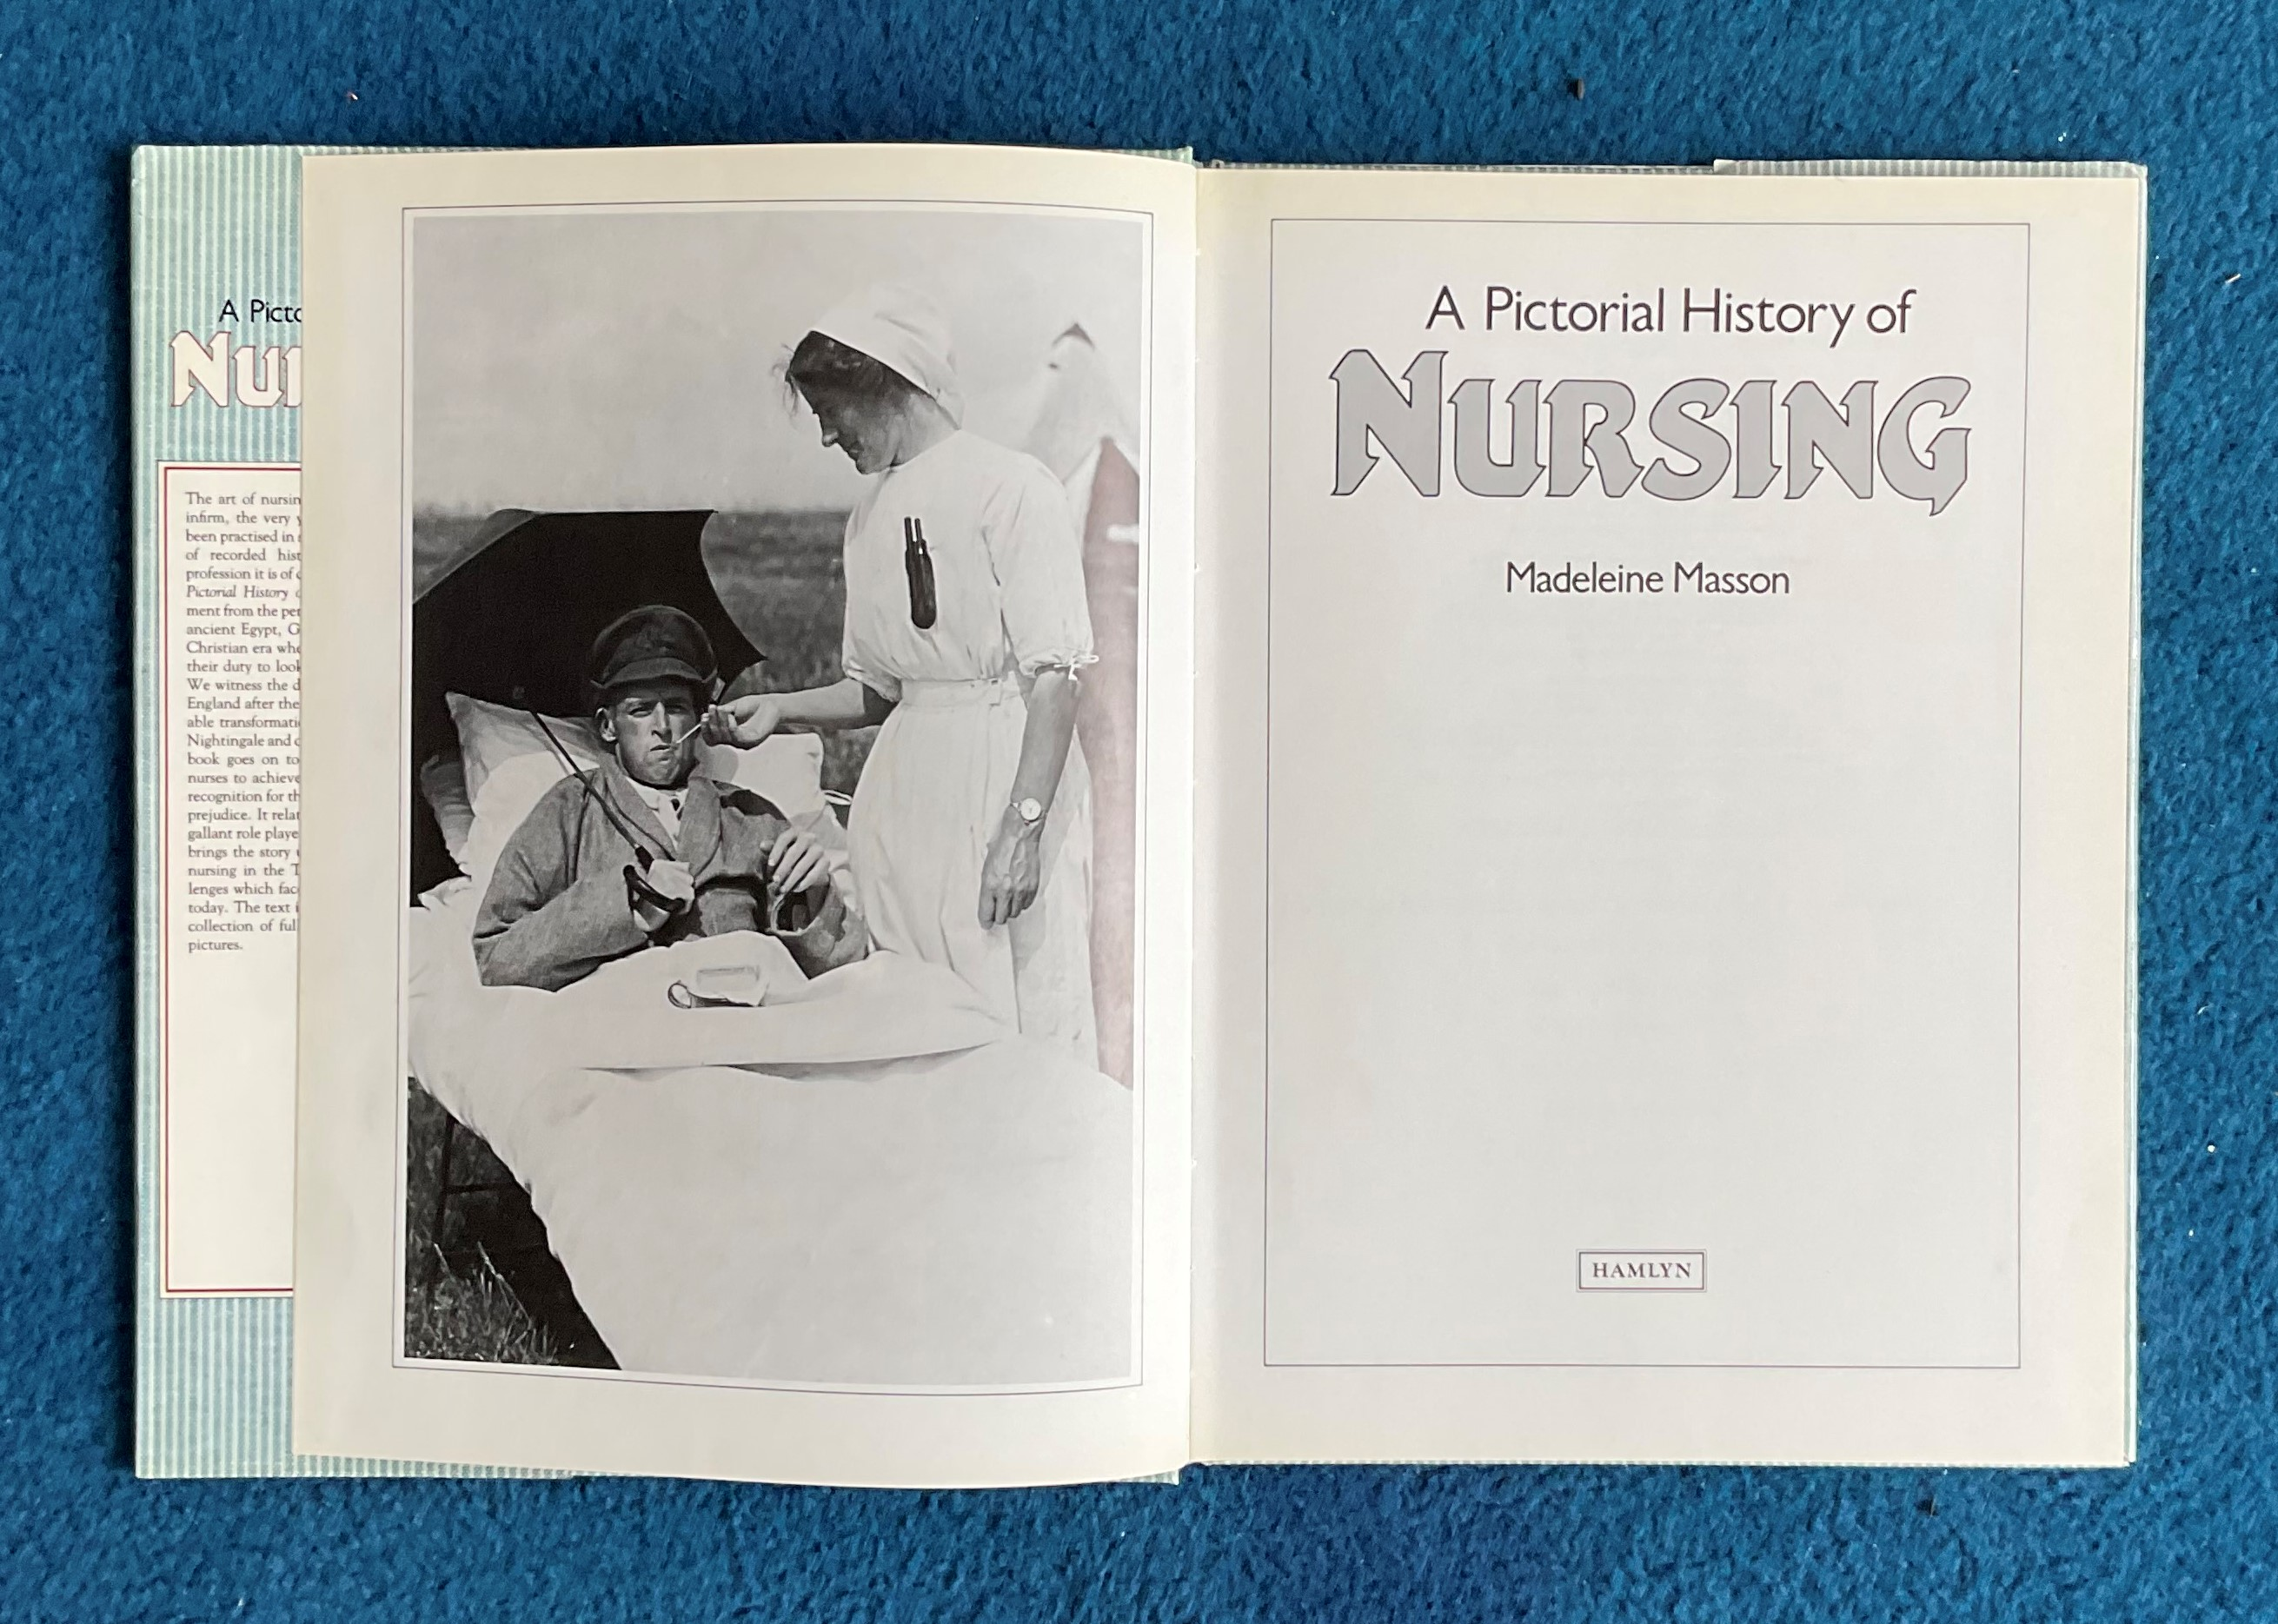 Sir Archibald McIndoe Family Photo Album plus 5 Hardback Books from His personal collection - Image 18 of 23